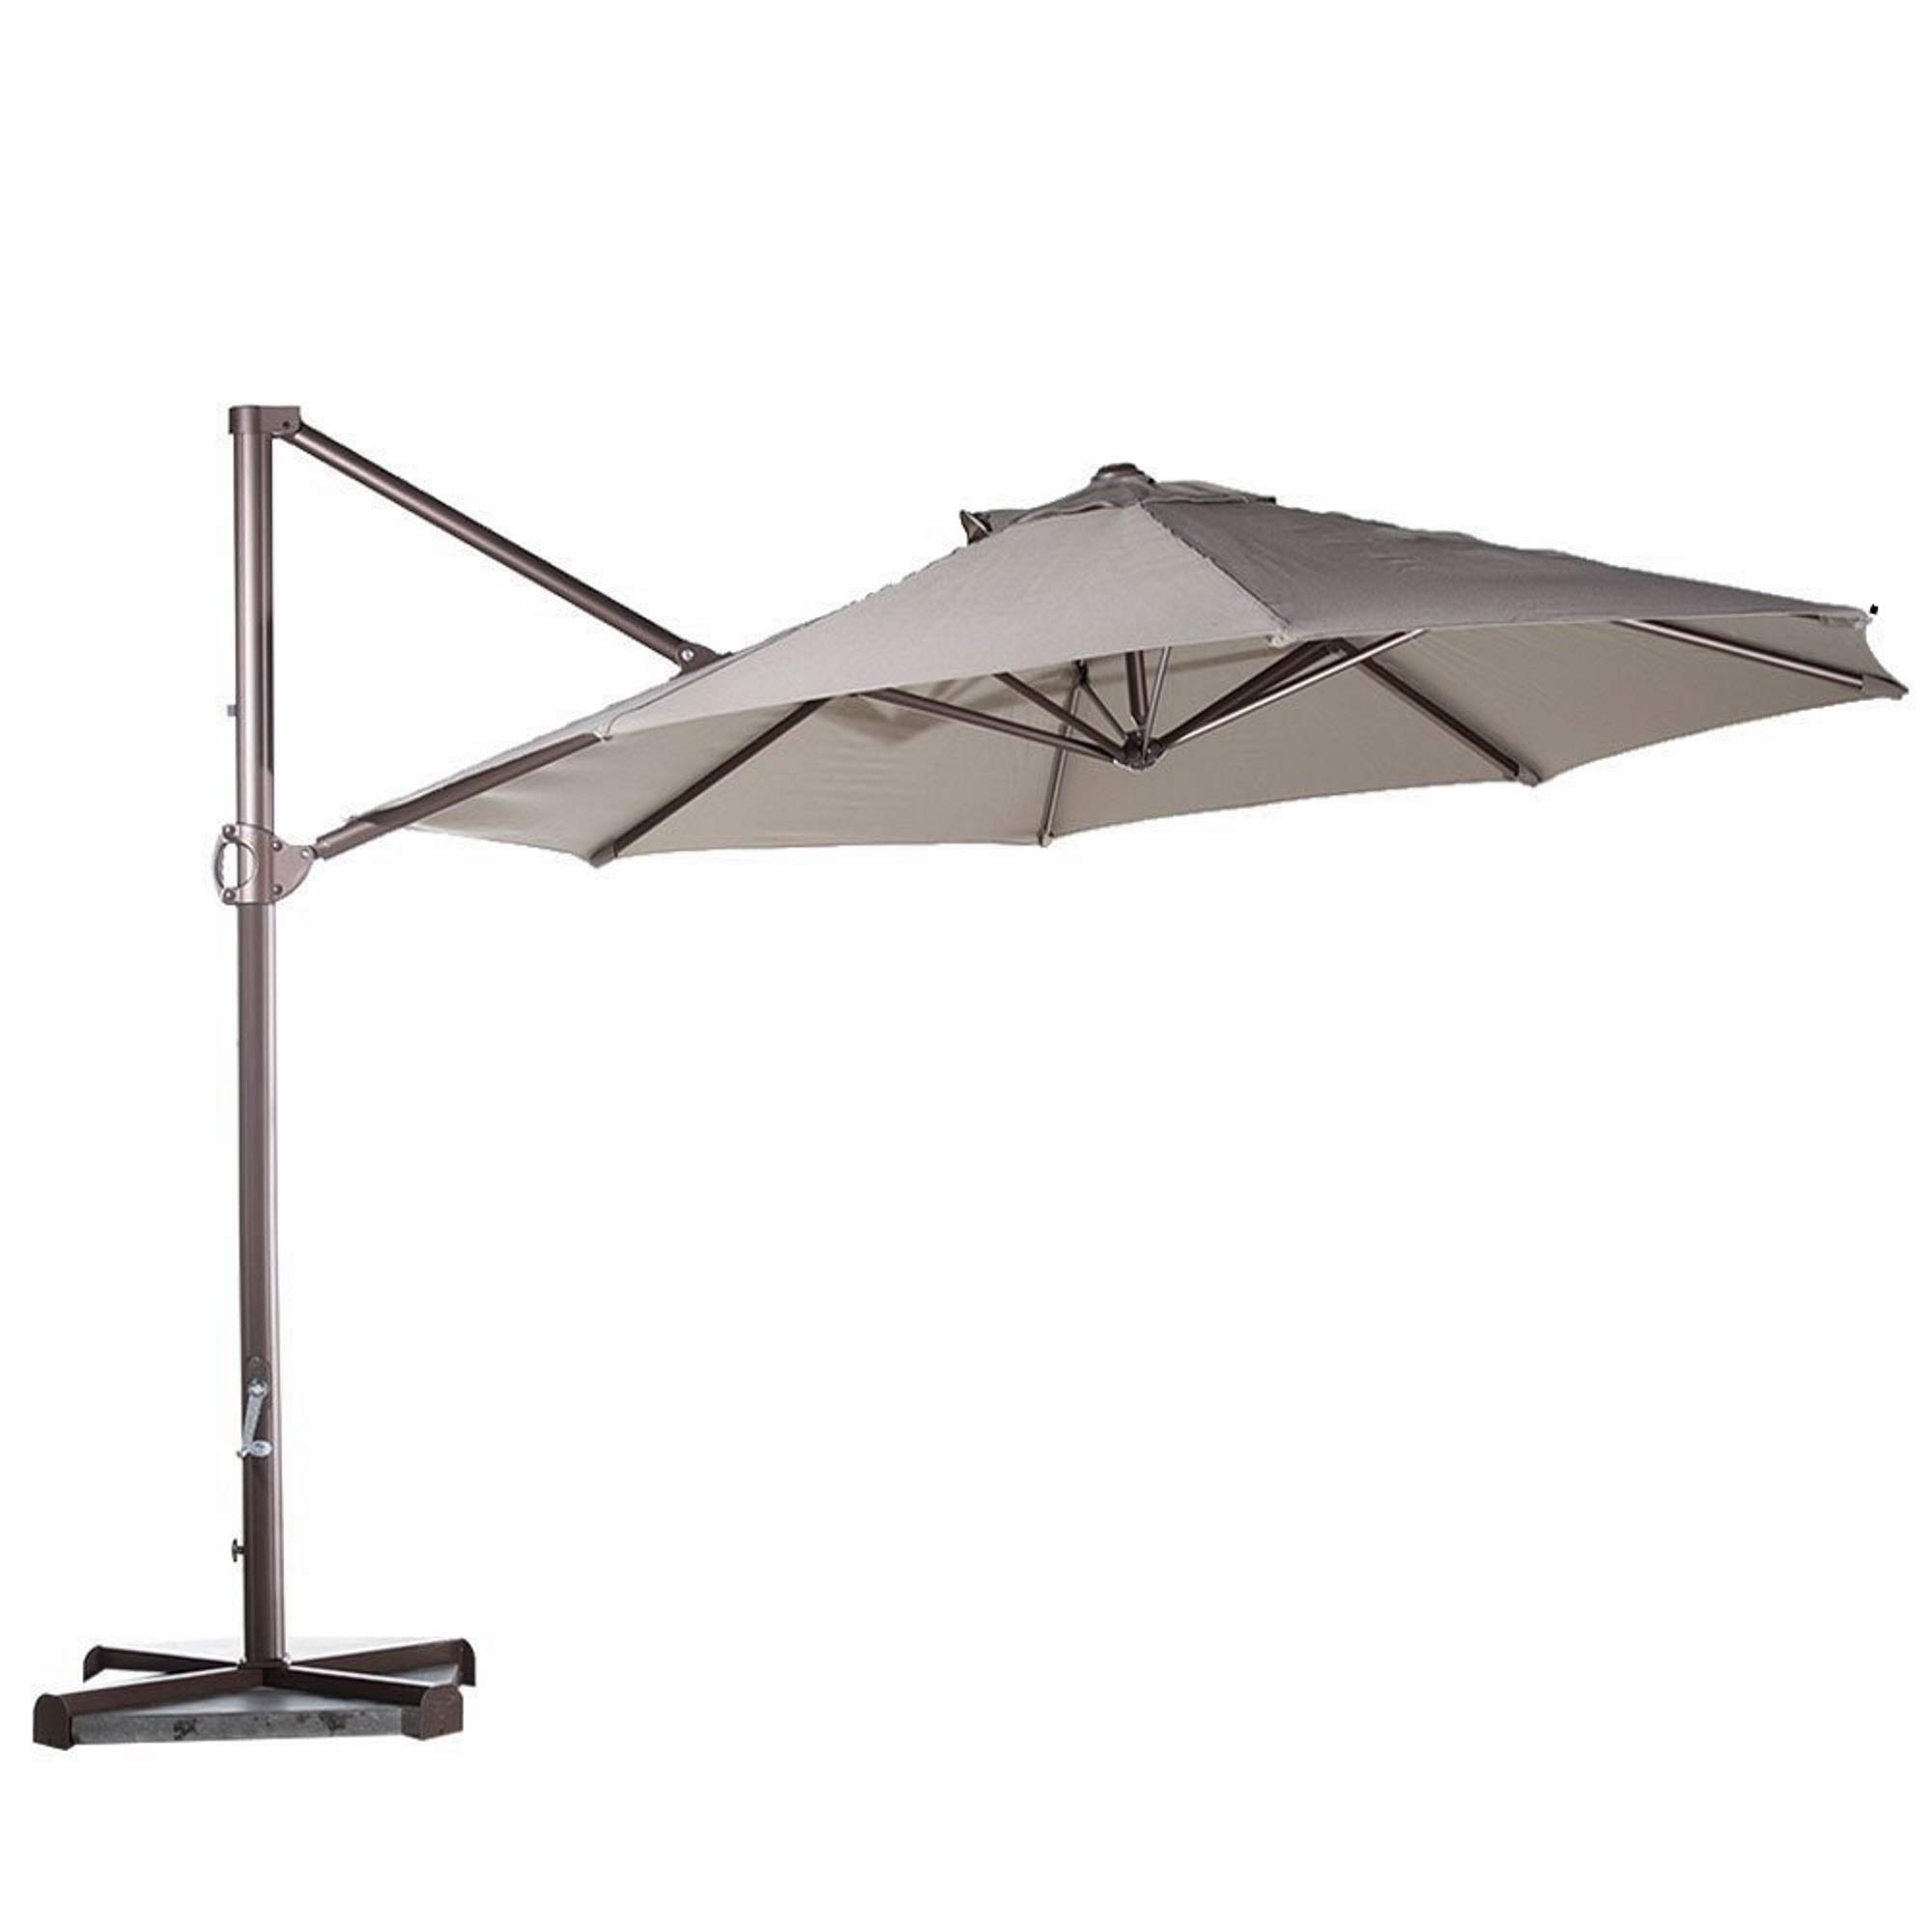 Formosa Covers Replacement Umbrella Canopy for 10ft 8 Rib Supported bar Cantilever Market Outdoor Patio Shades in Taupe Ribs Length 58'' to 60'' (Canopy Only)